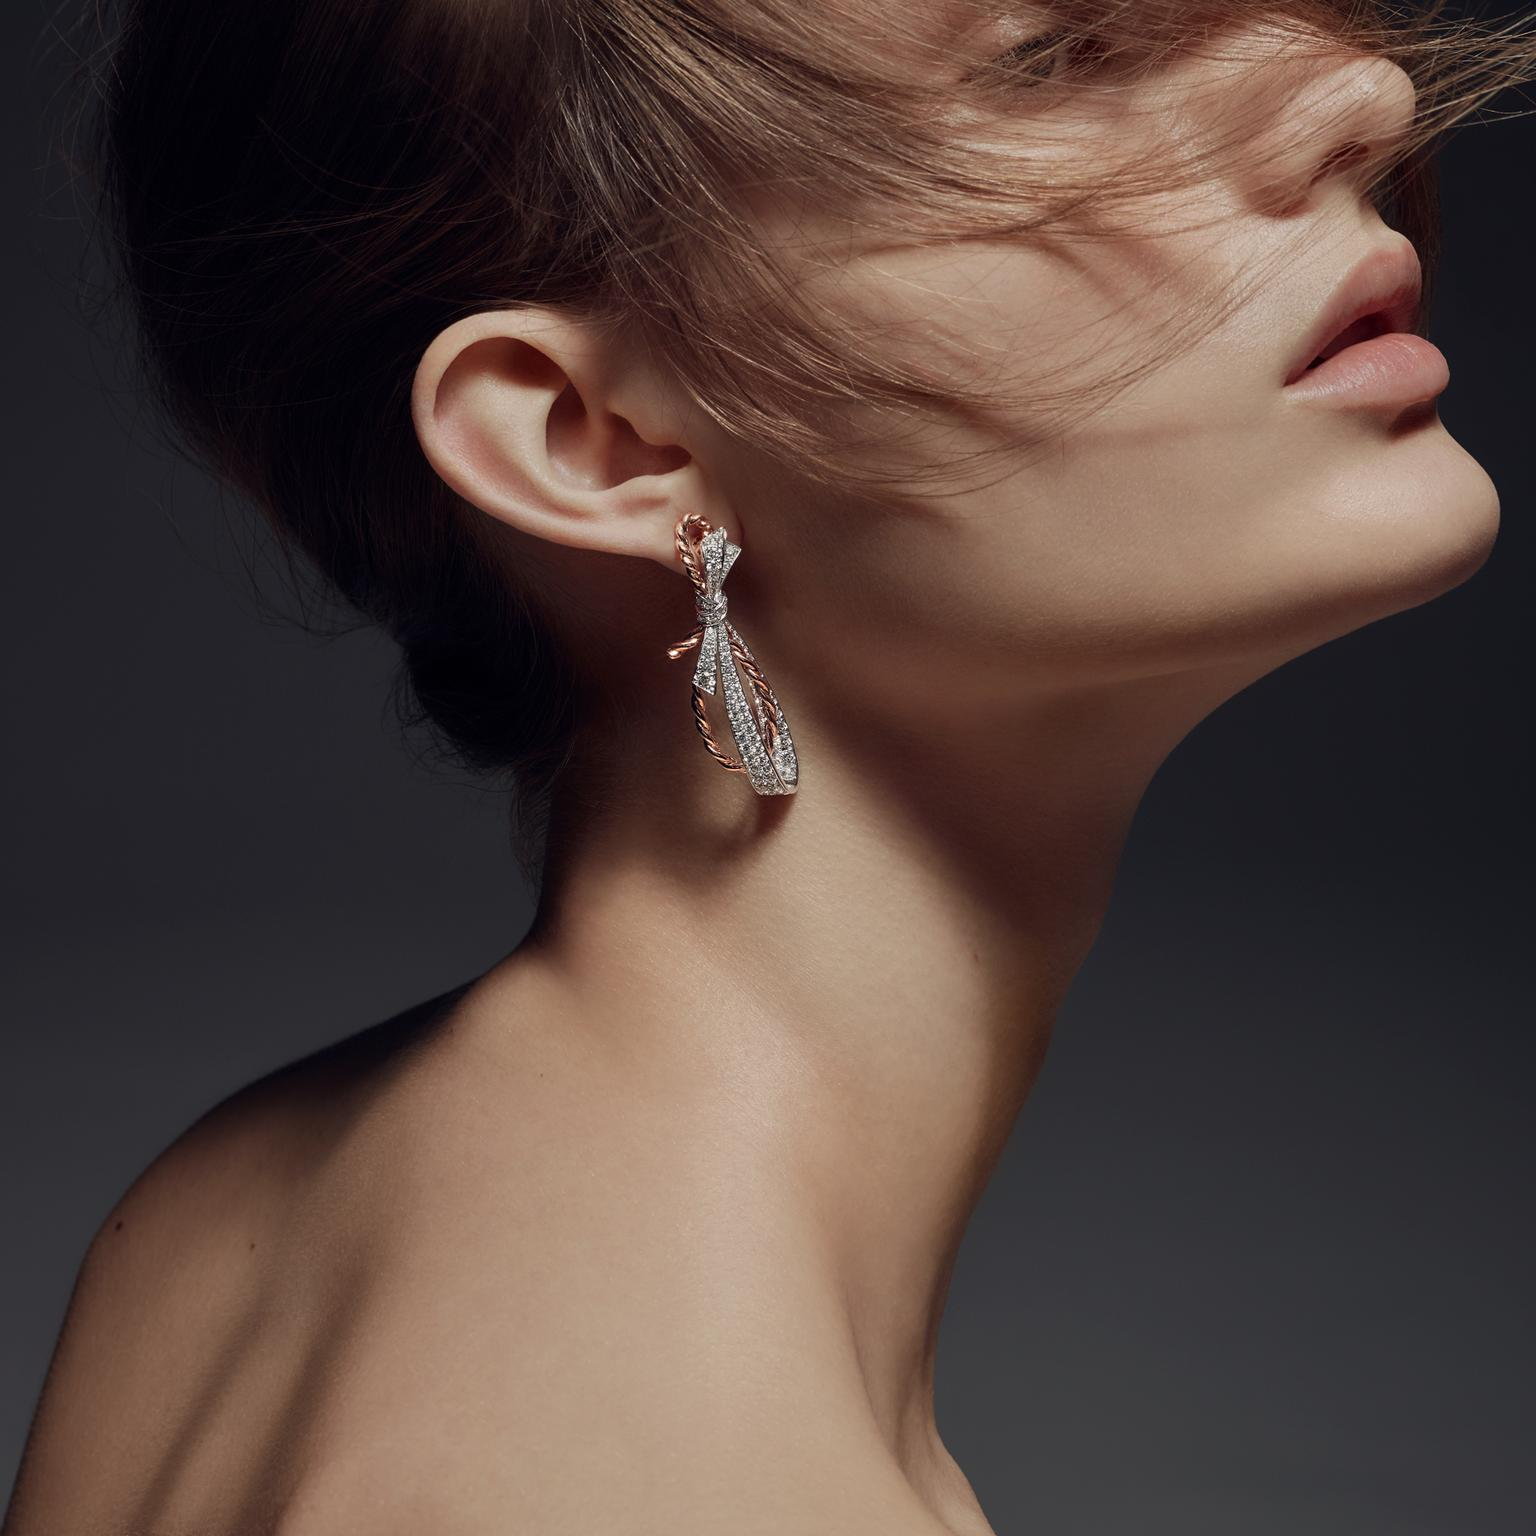 Chaumet insolence earrings